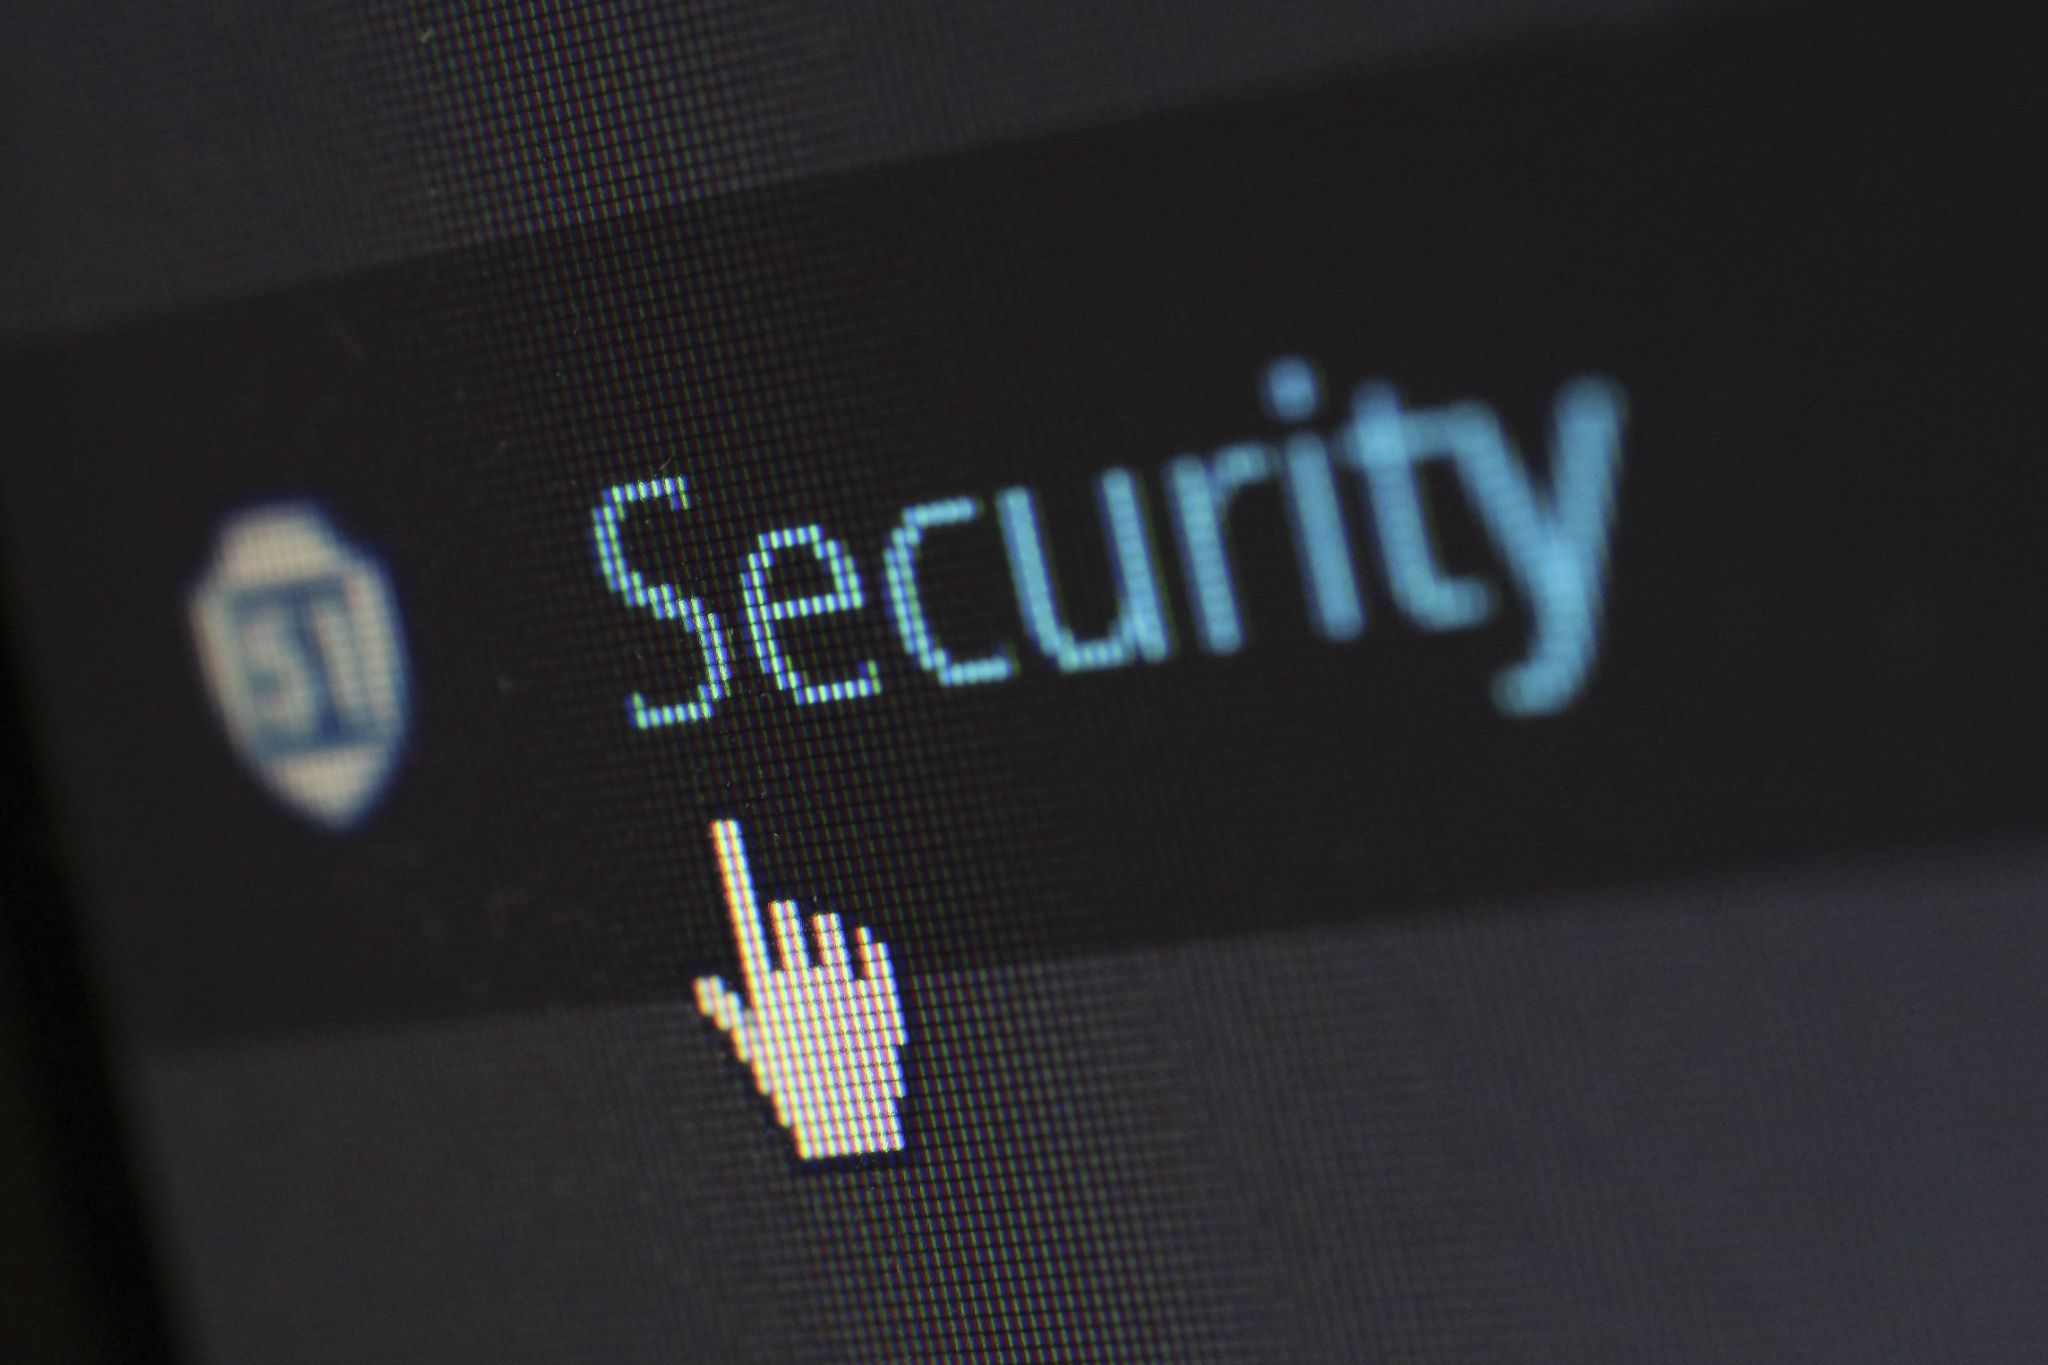 Security - Backup software